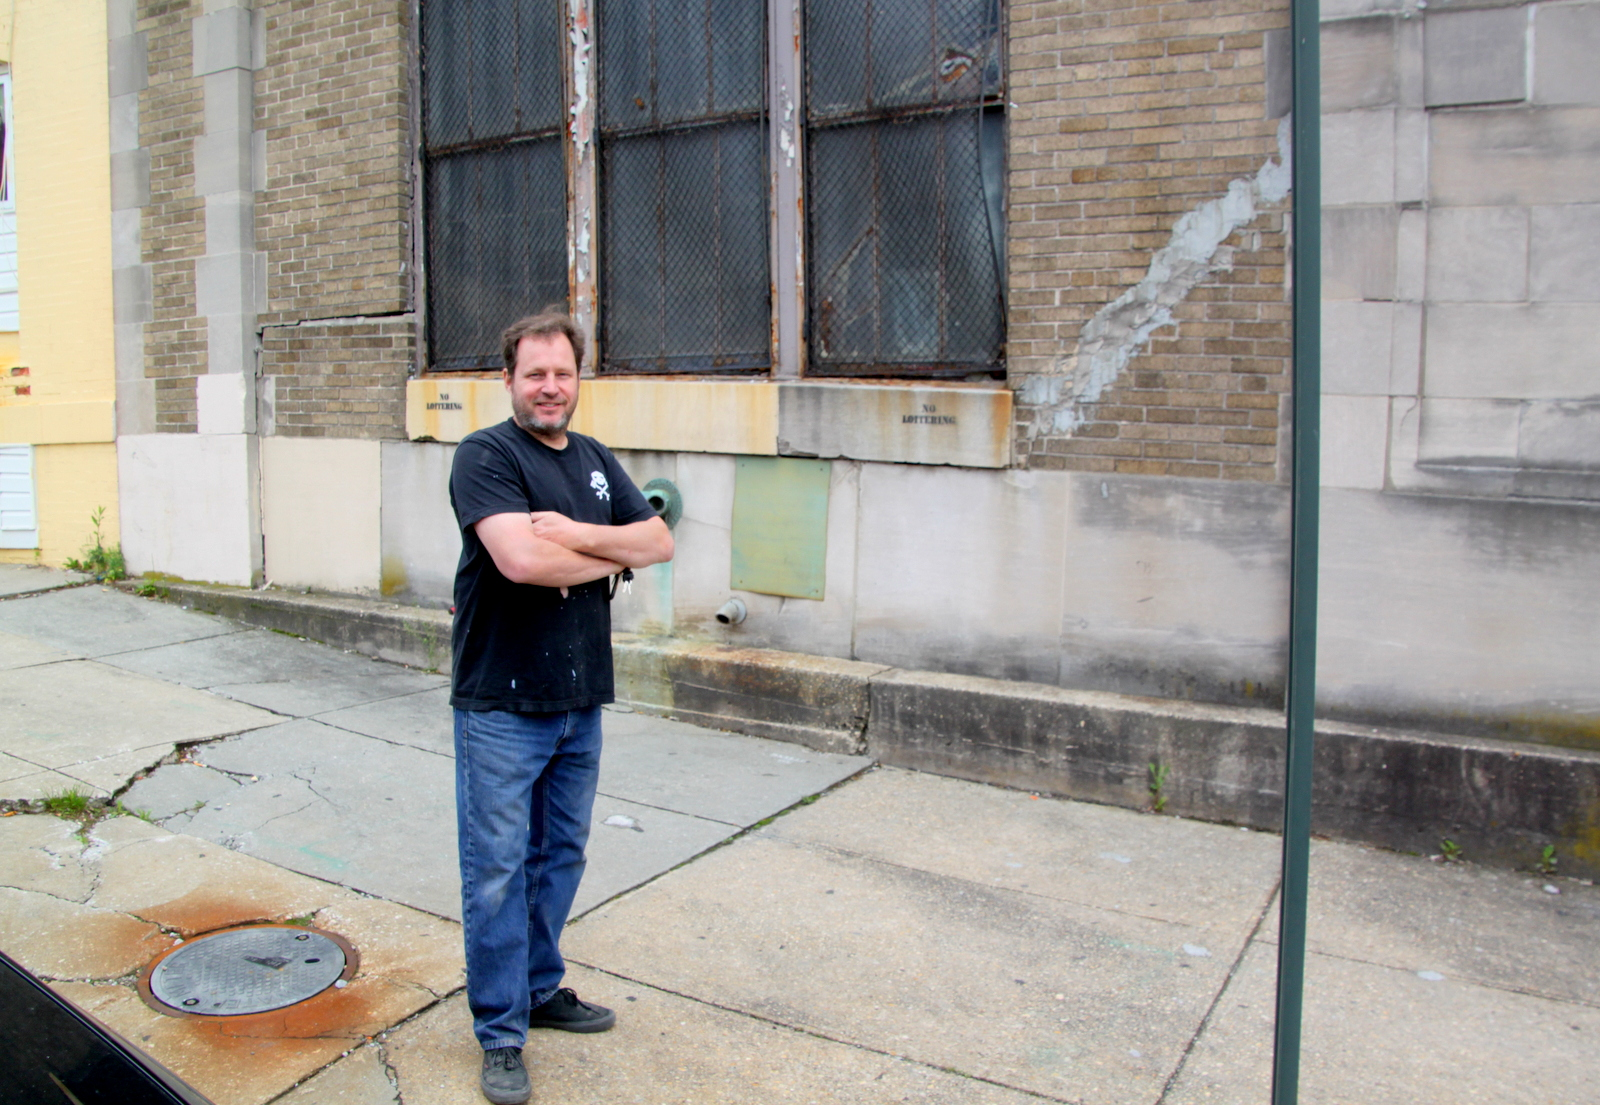 Joe Clancy has watched cracks appear in sidewalk and walls at 439 East Preston Street. (Fern Shen)